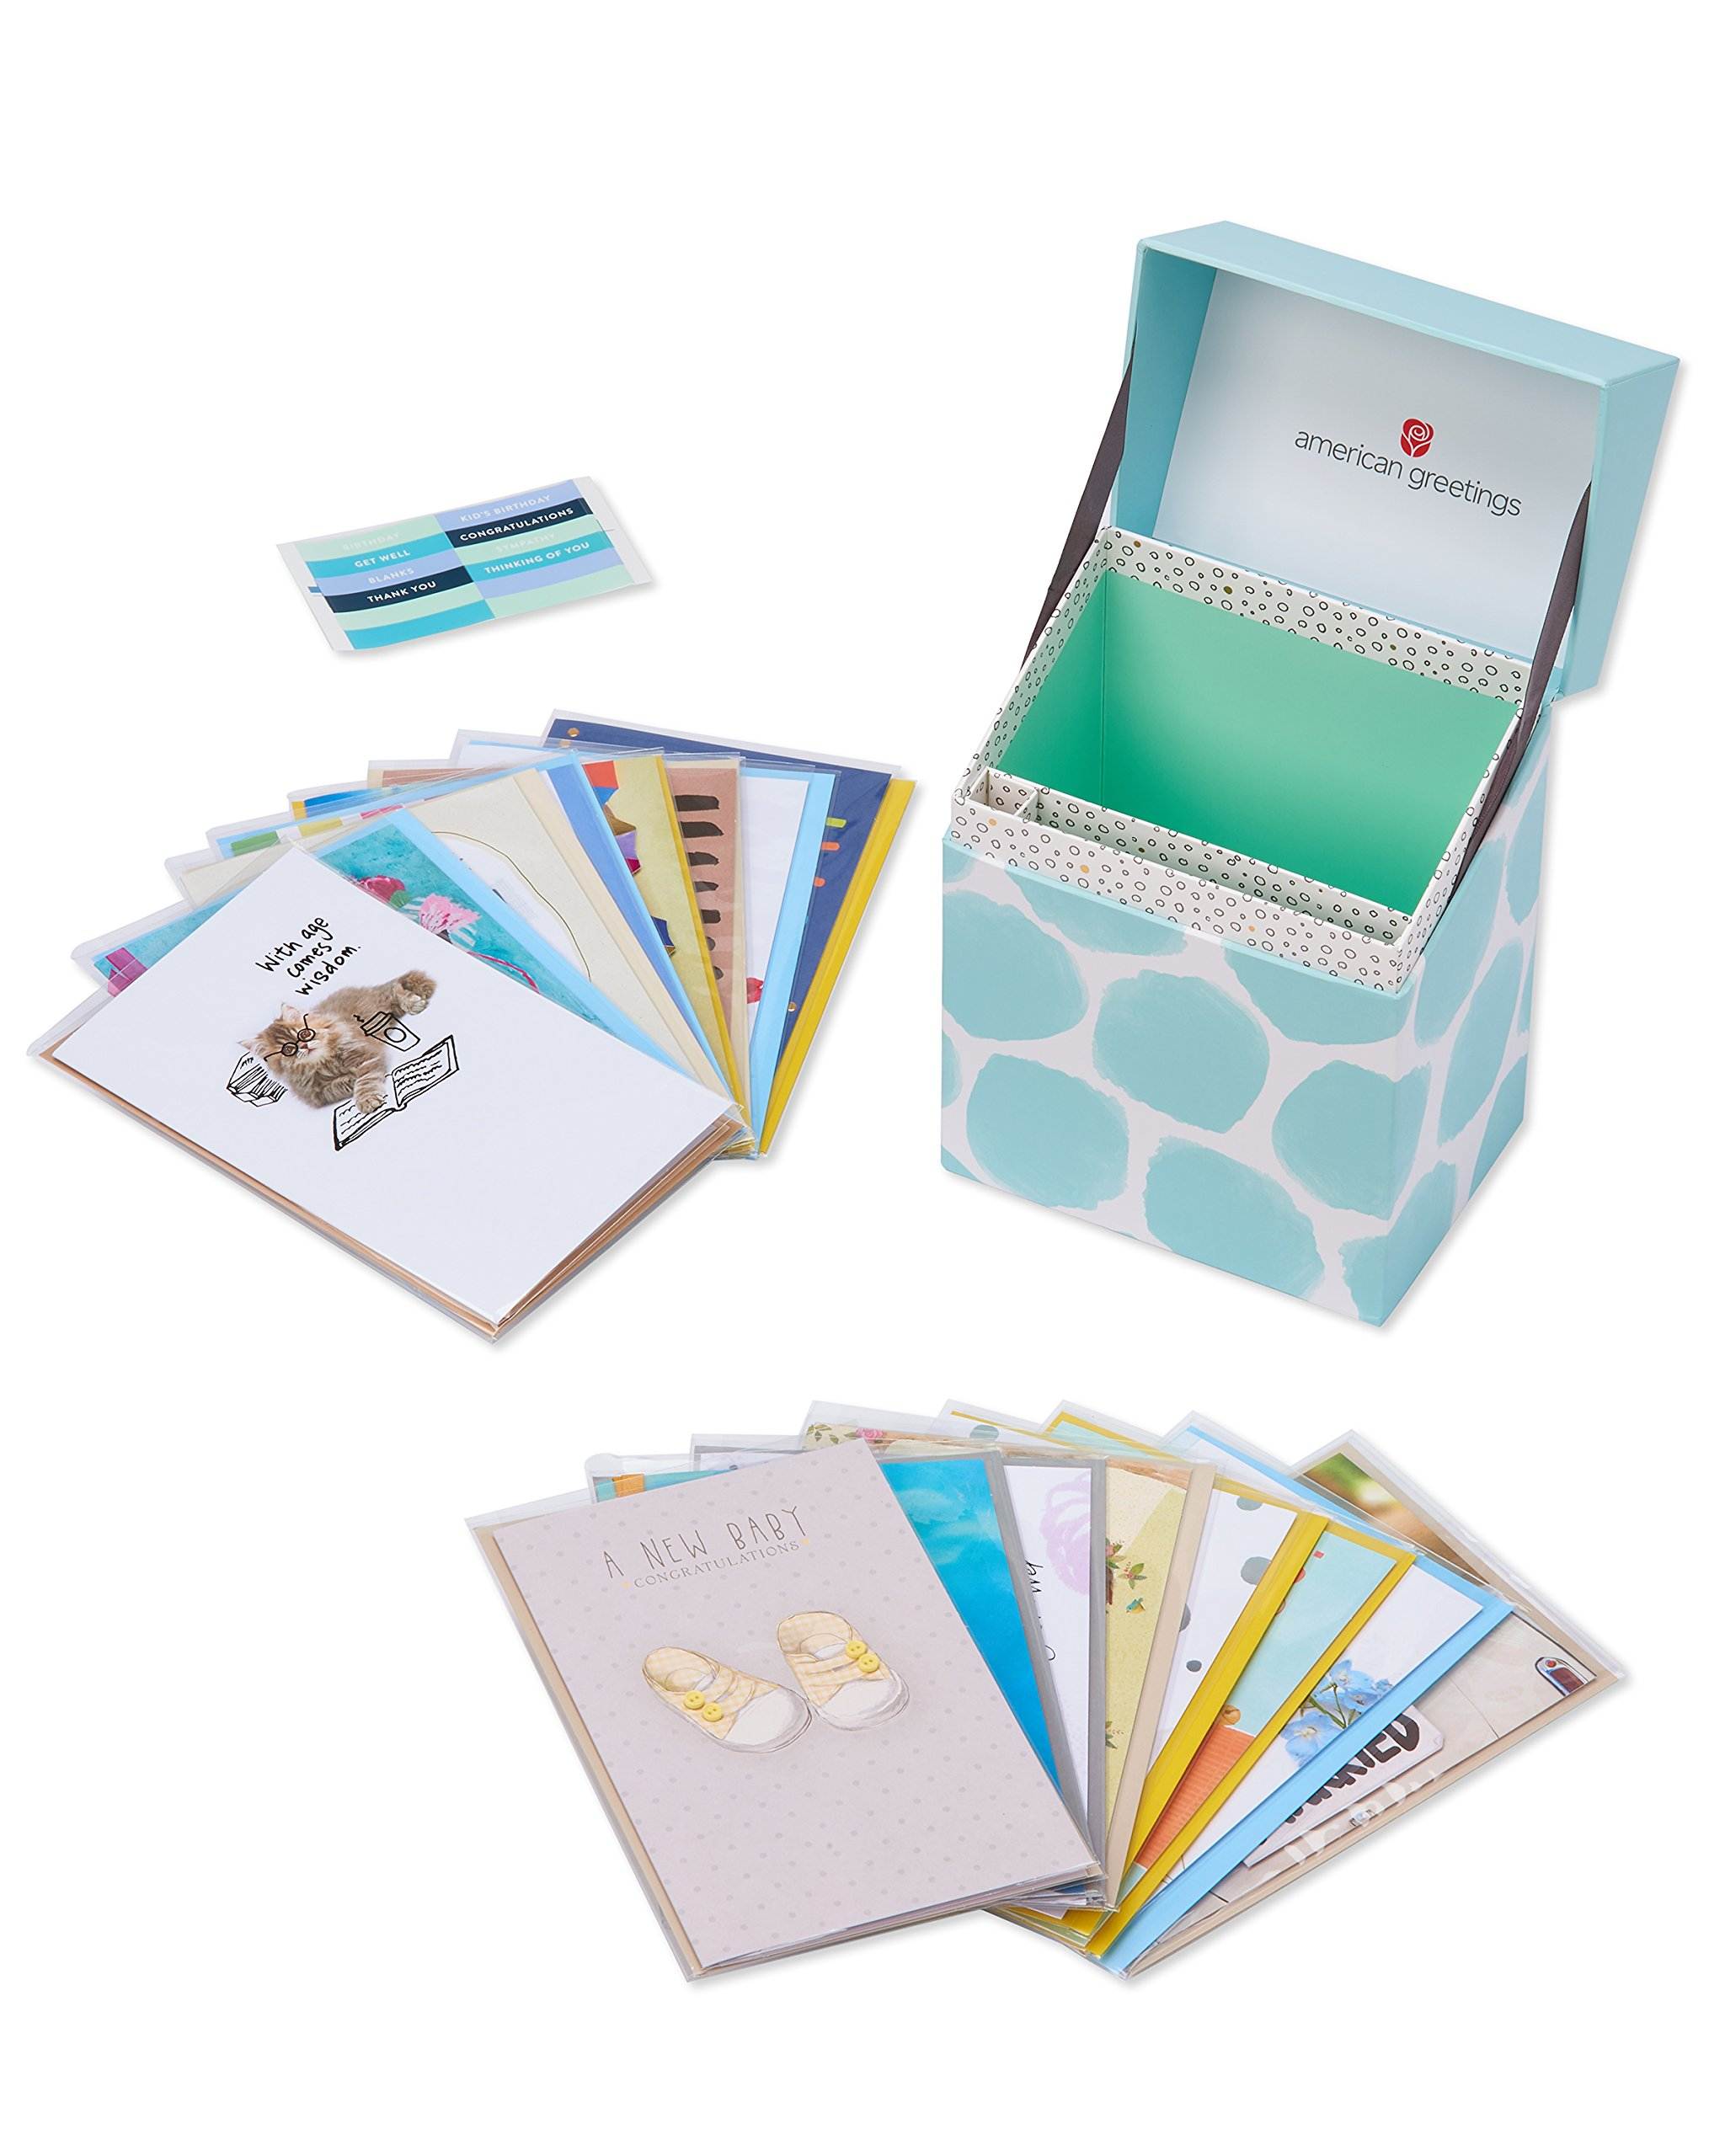 American Greetings Starter Kit Greeting Card Collection With Organizer, 16-Count